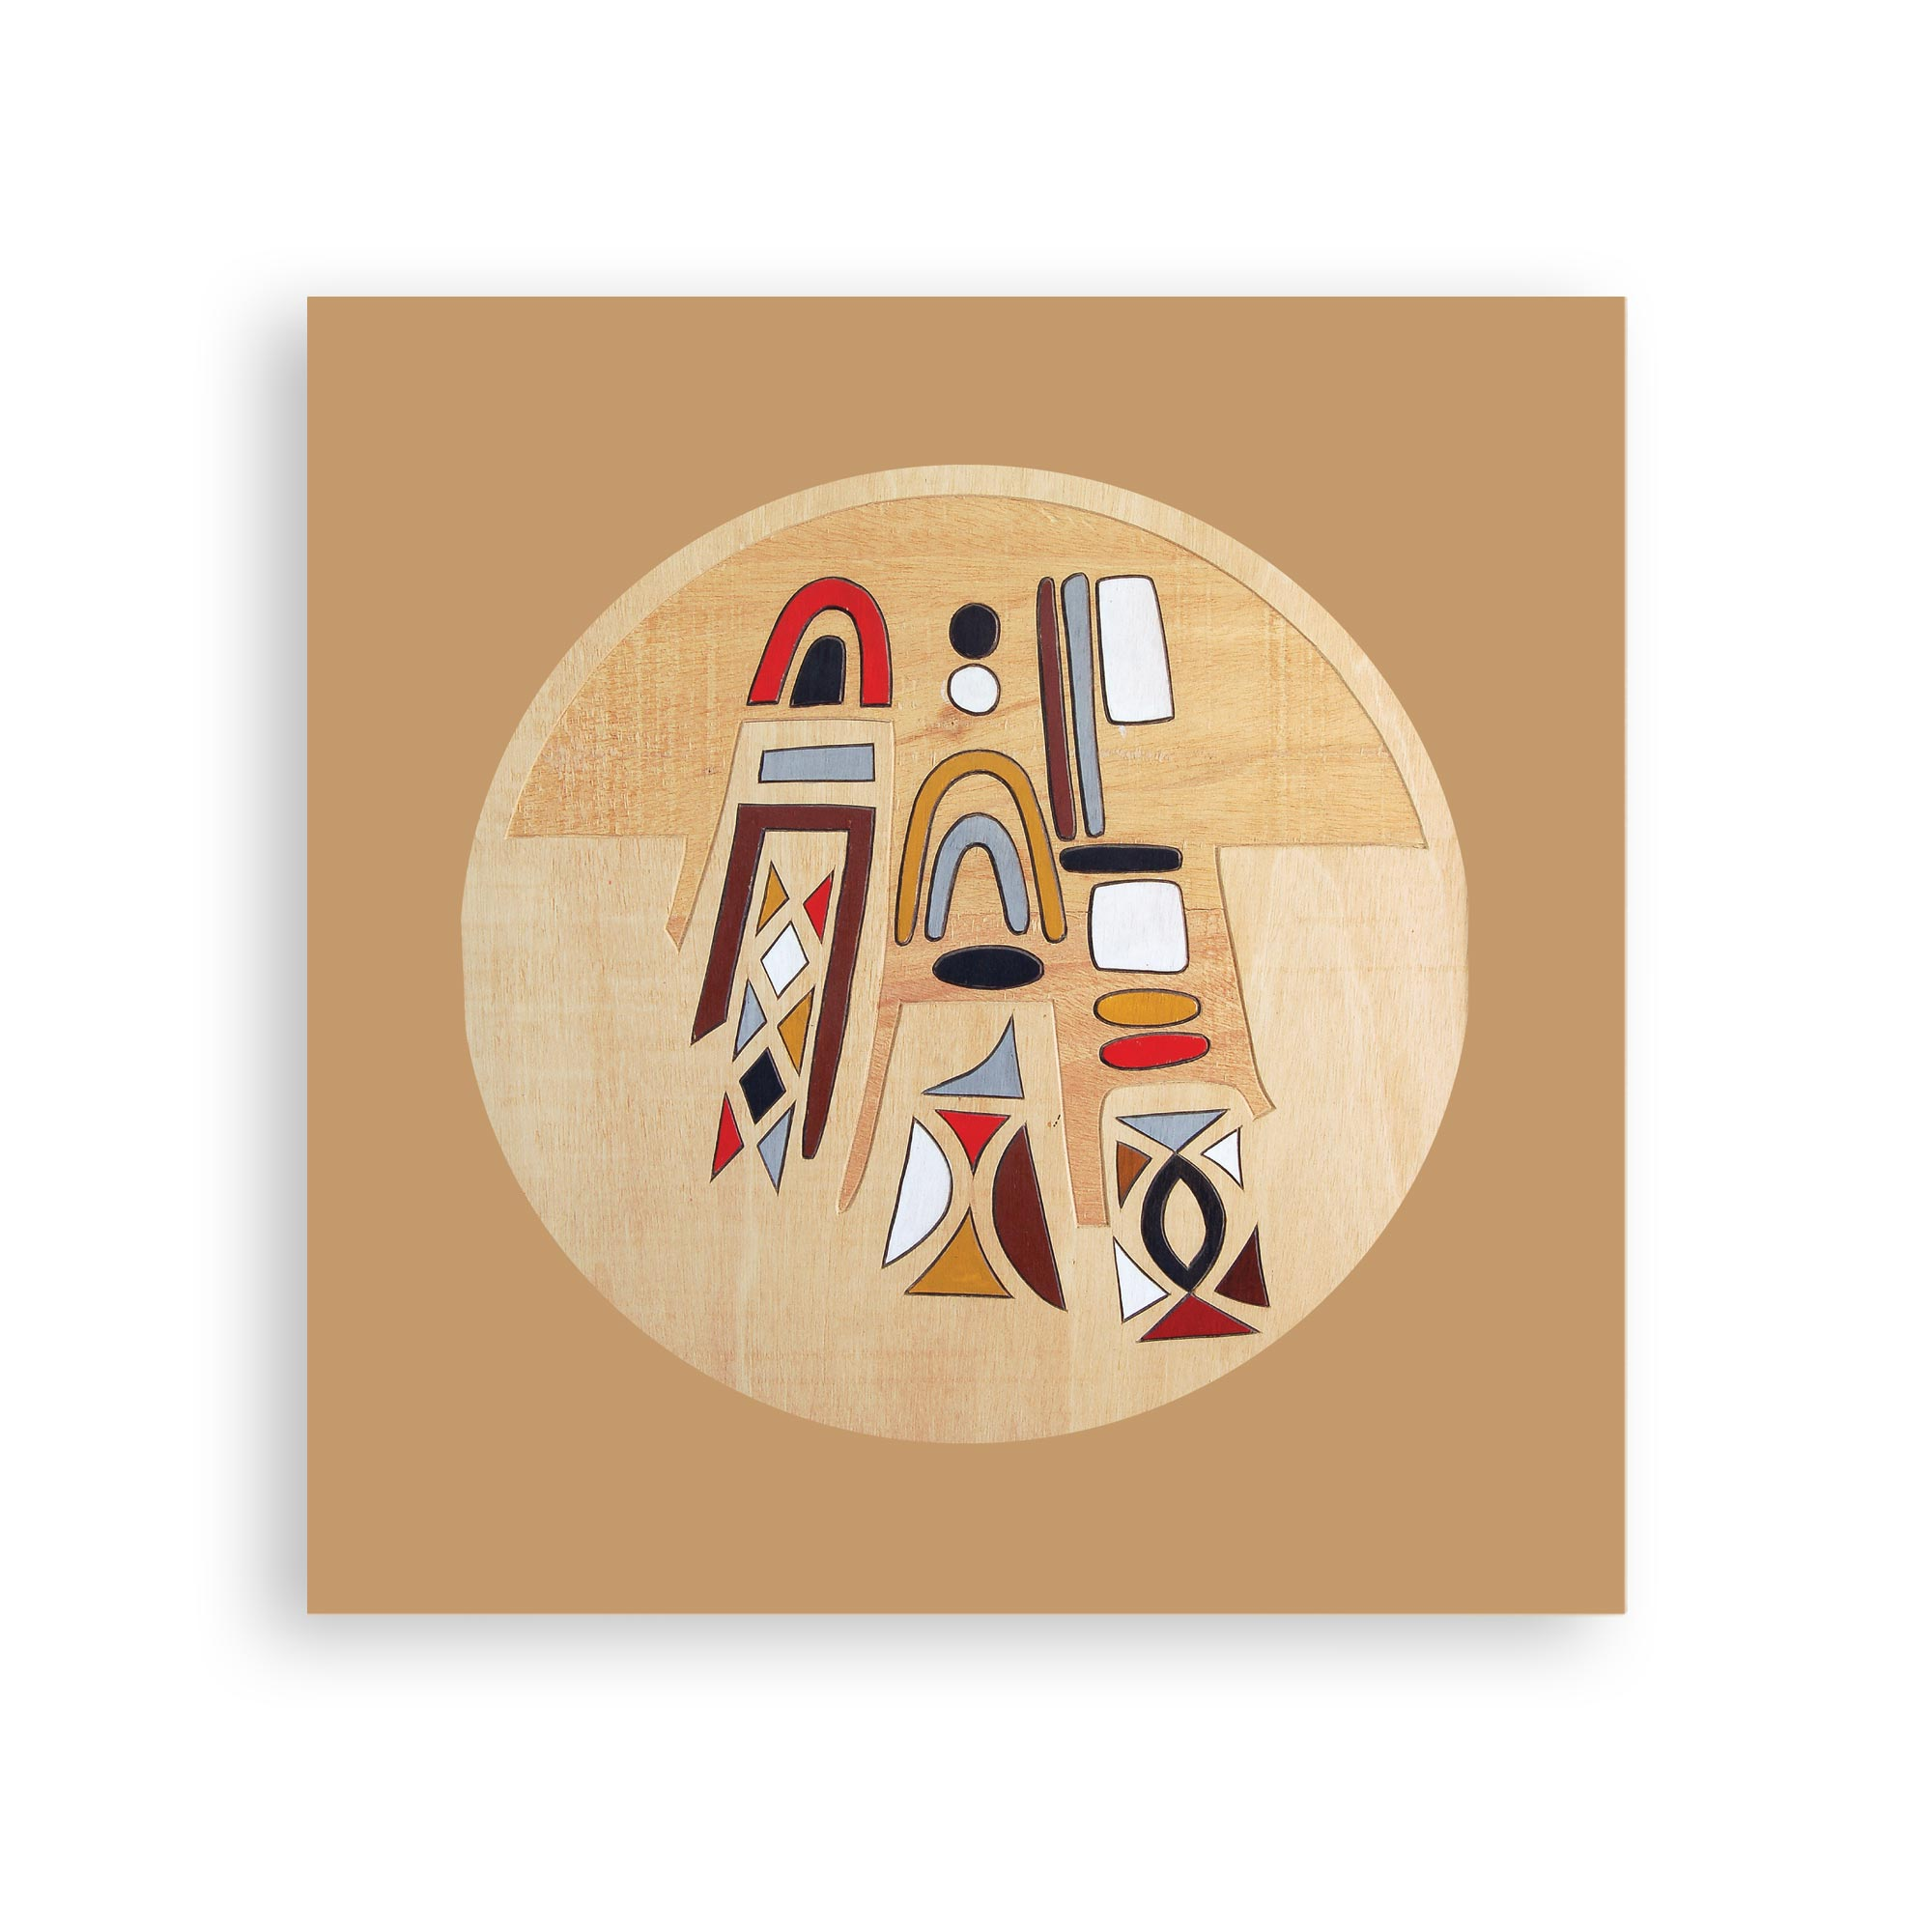 We – abstract art print with neutral colors